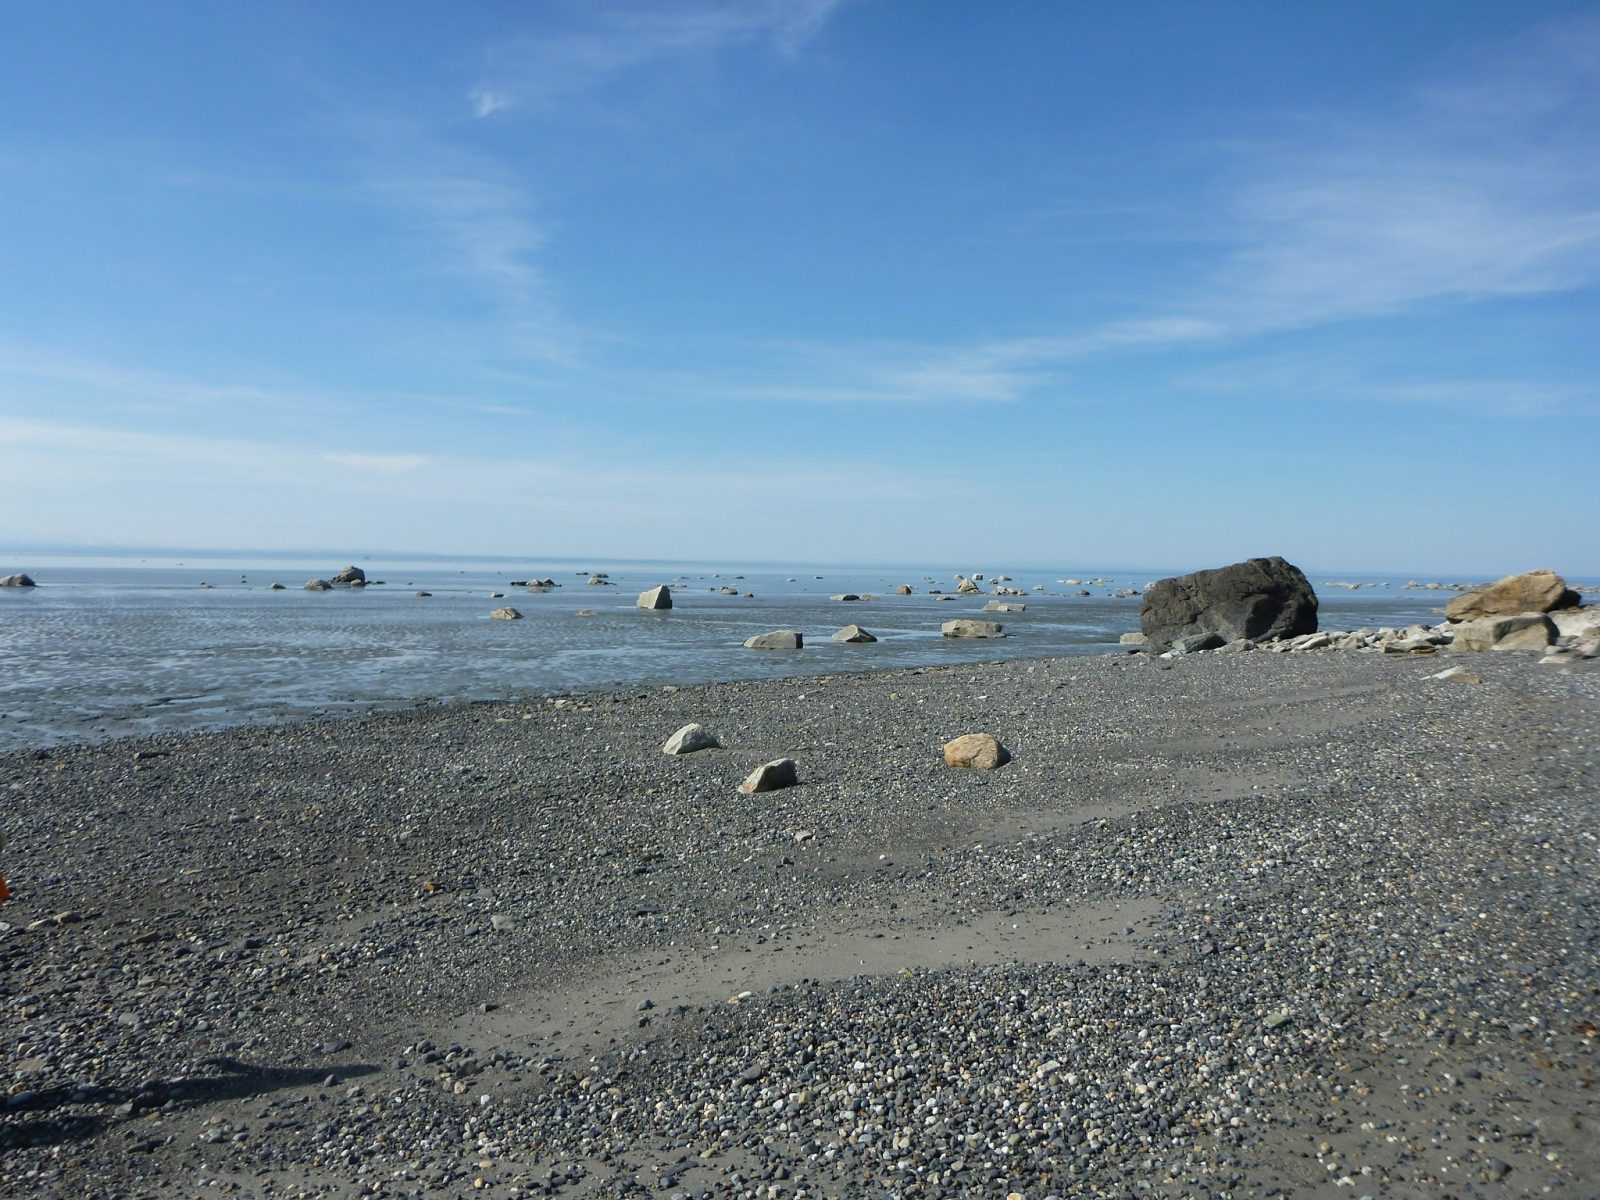 Camping in Alaska at the Captain Cook Campground has a gravel beach on a large body of ocean water